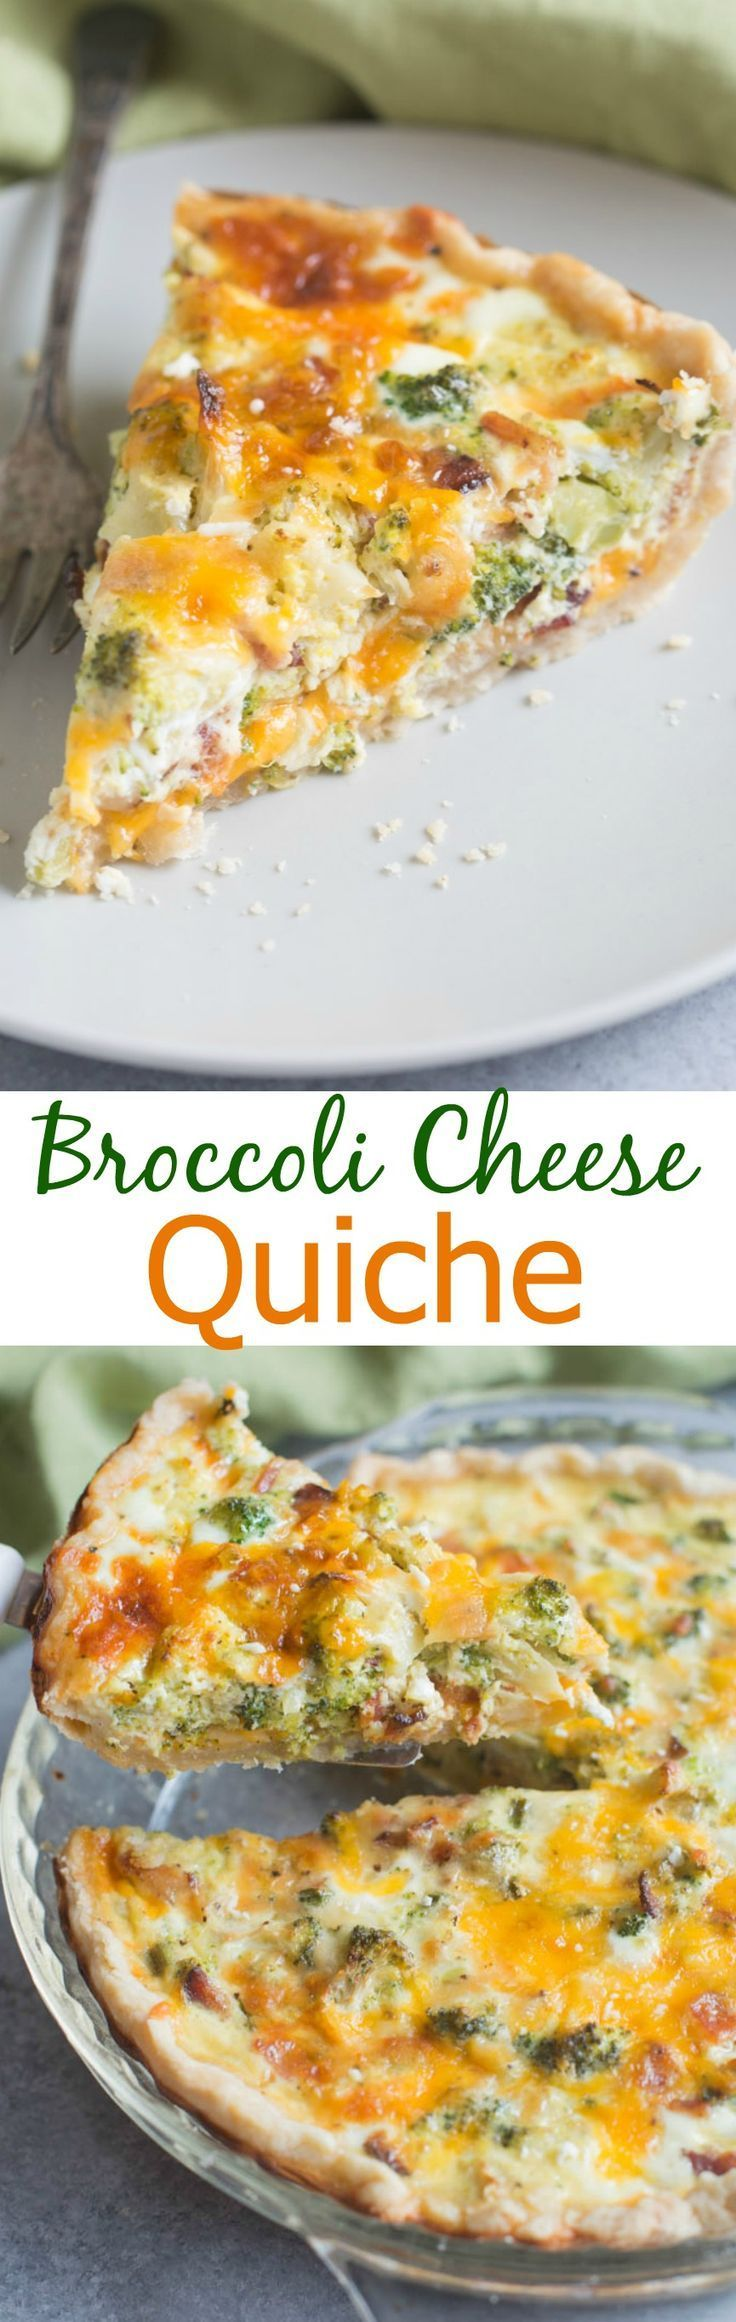 Broccoli Cheese Quiche made in my favorite homemade pie crust. Family and…